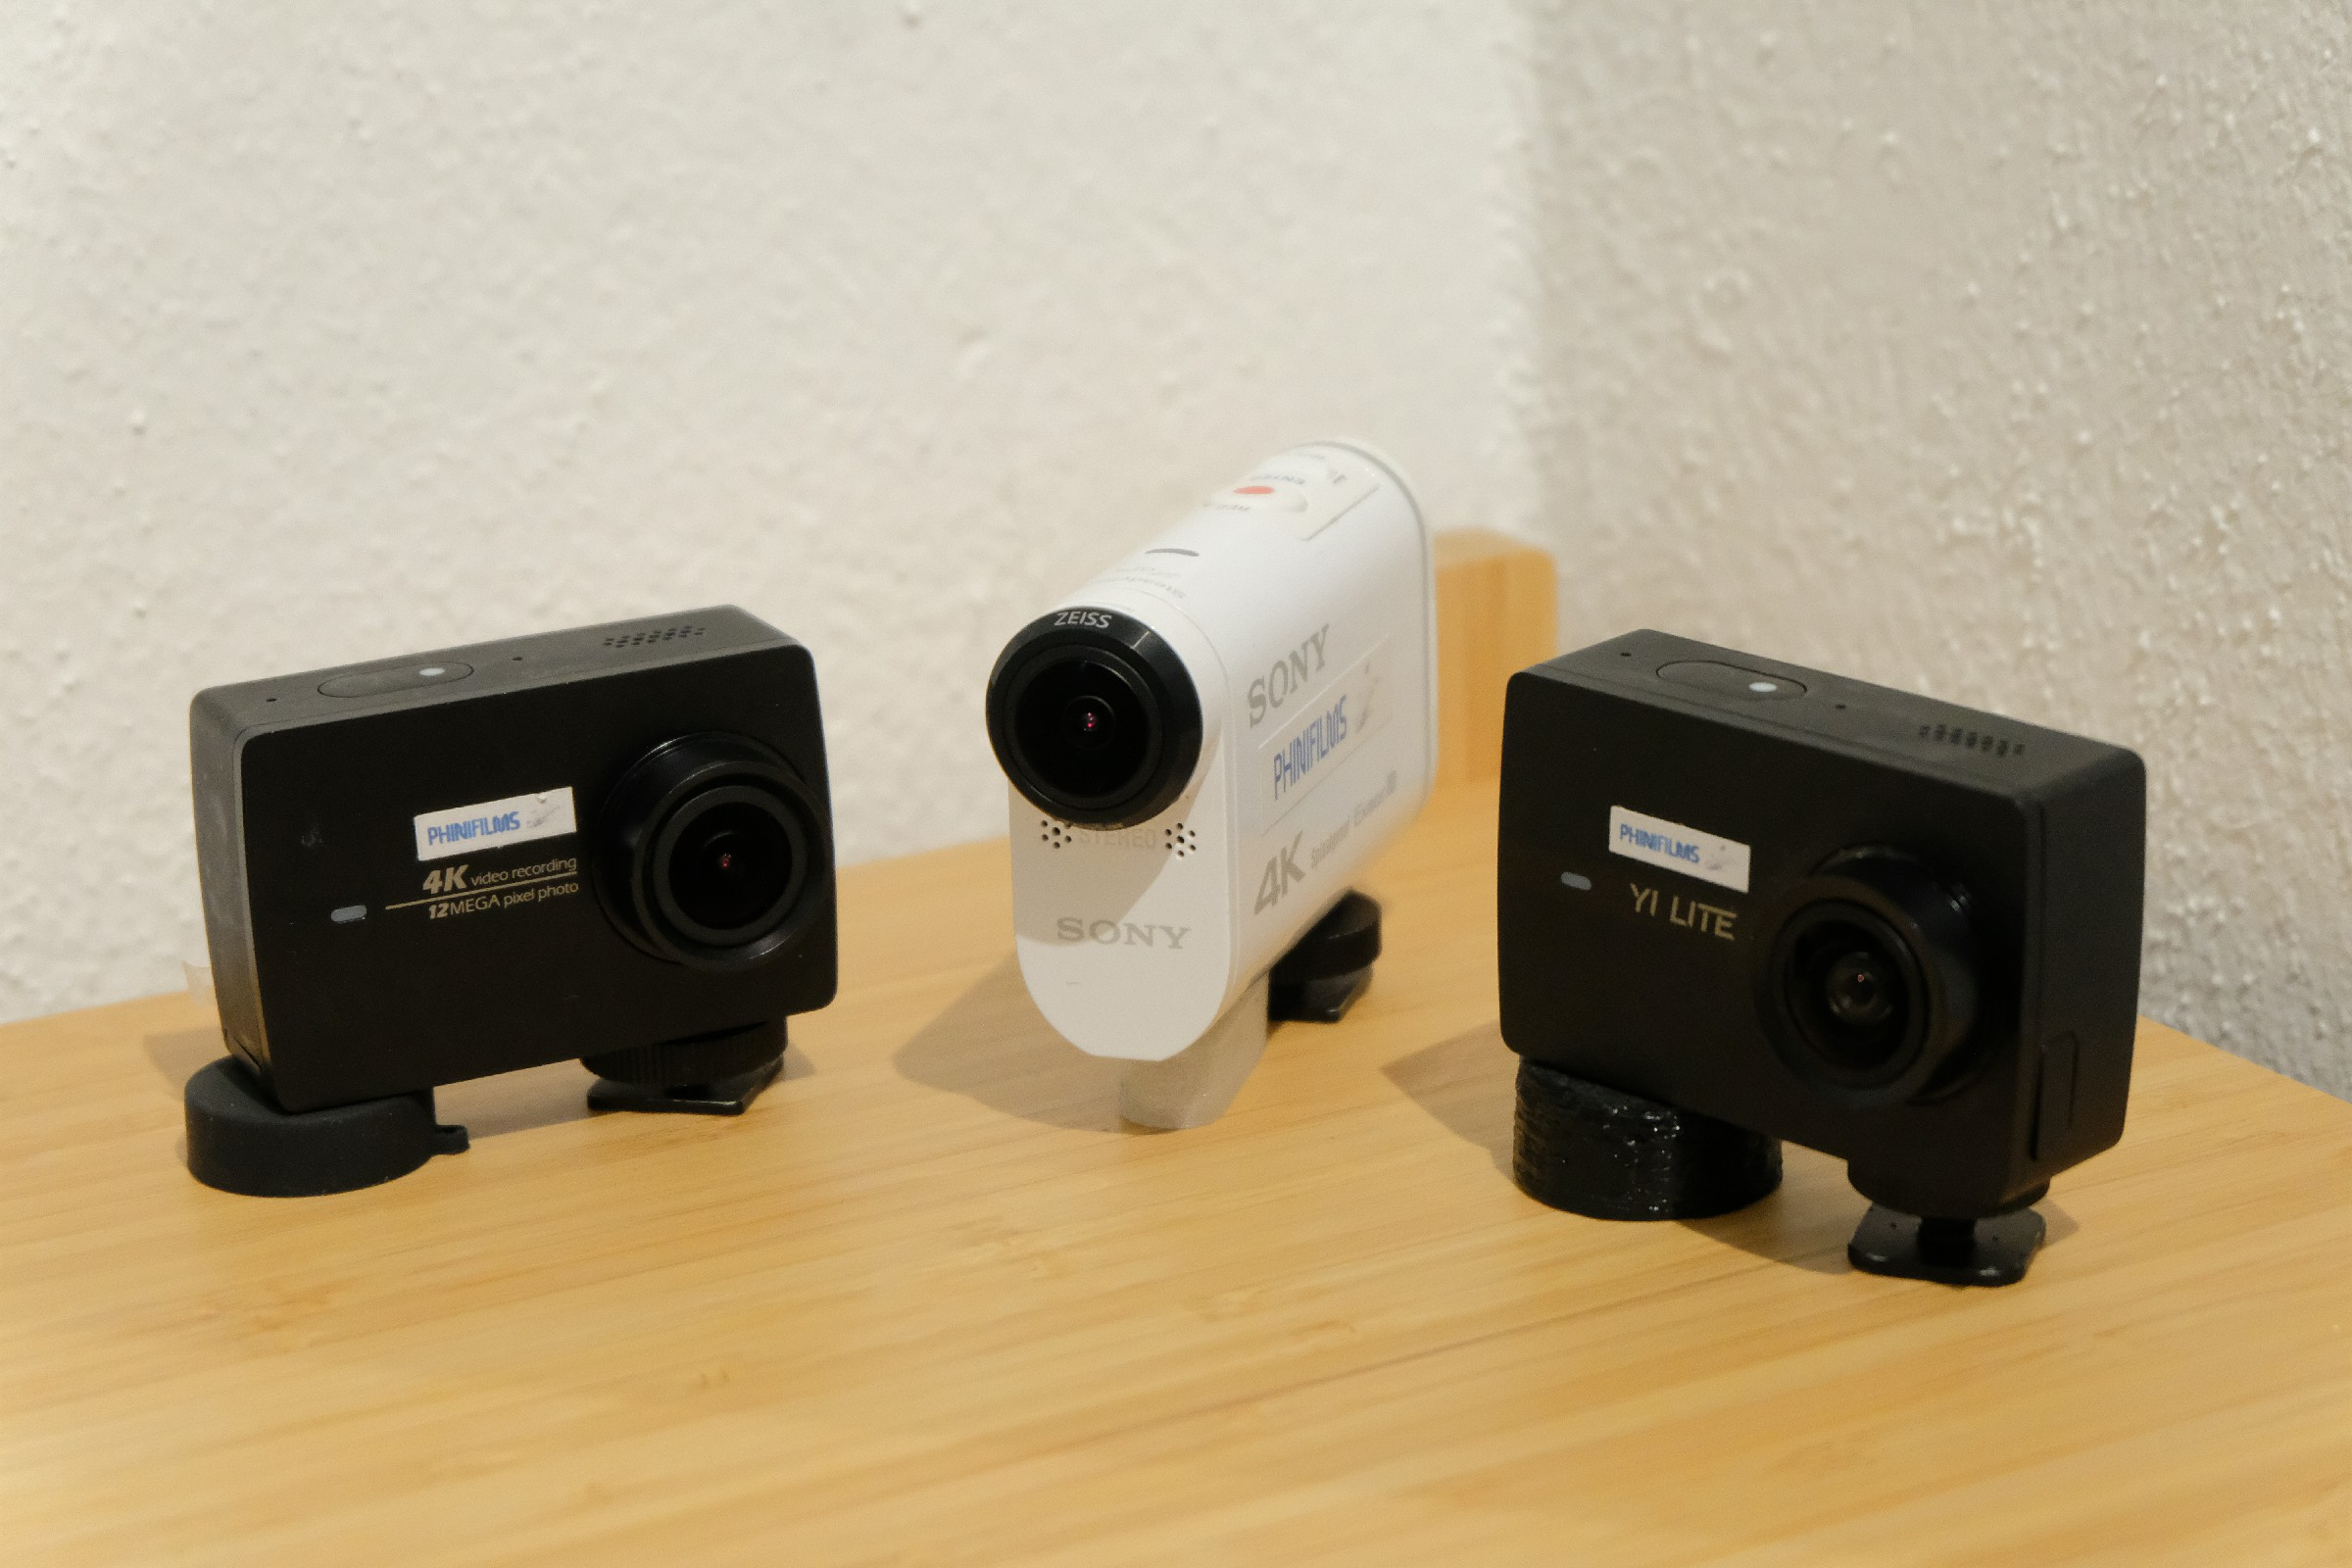 alle drei Action-Cams